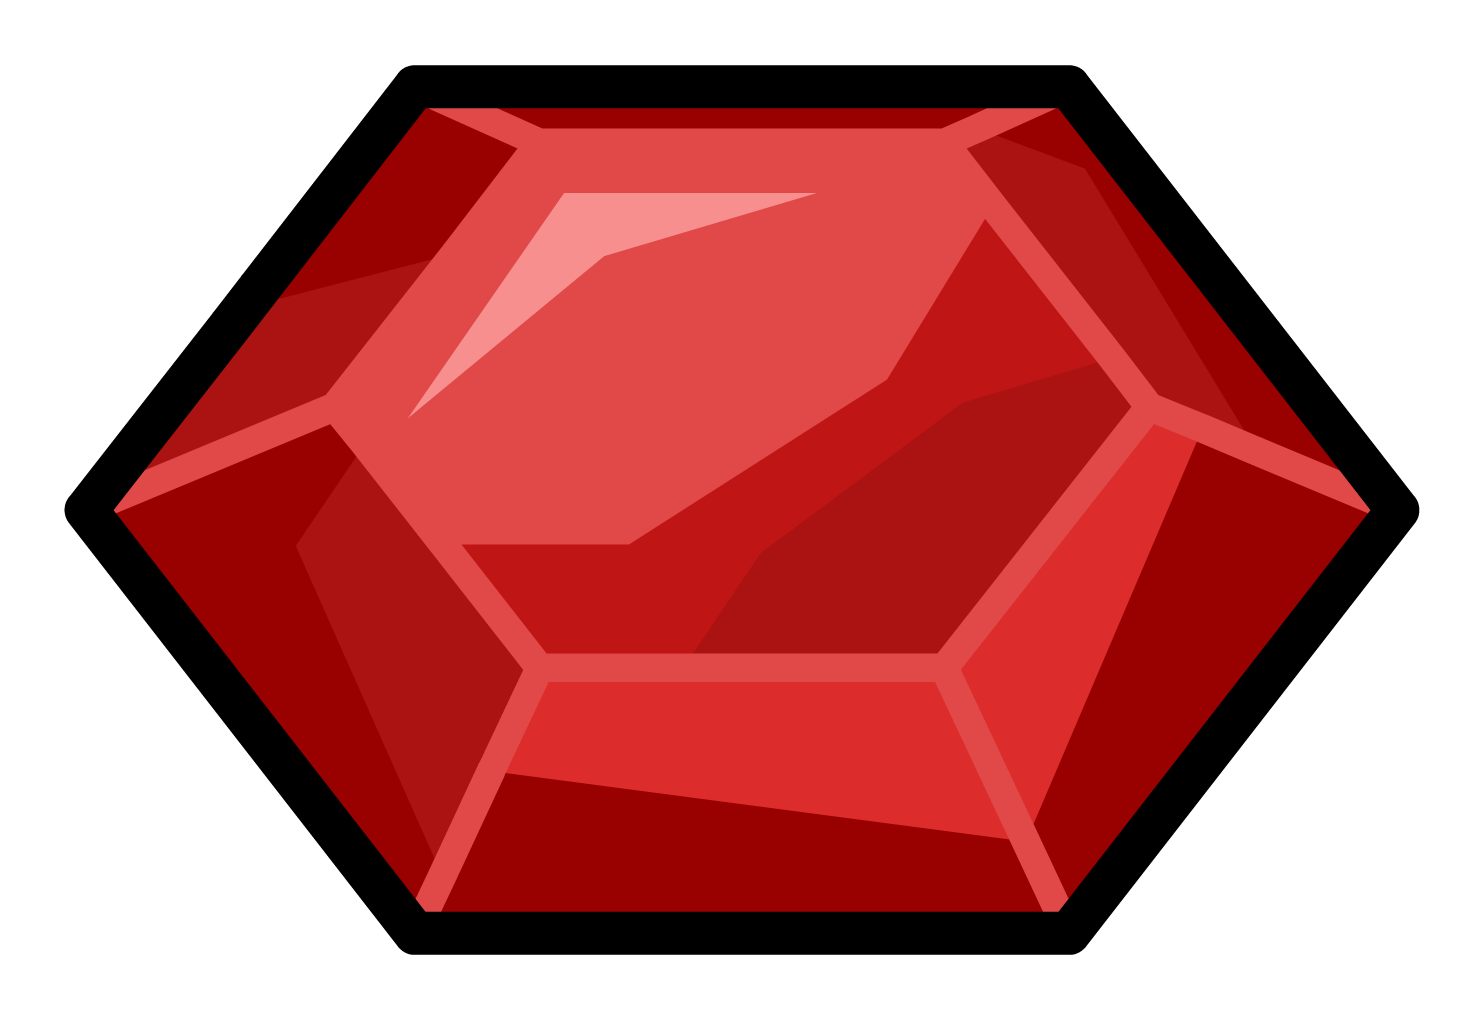 Ruby transparent. Stone gem png image